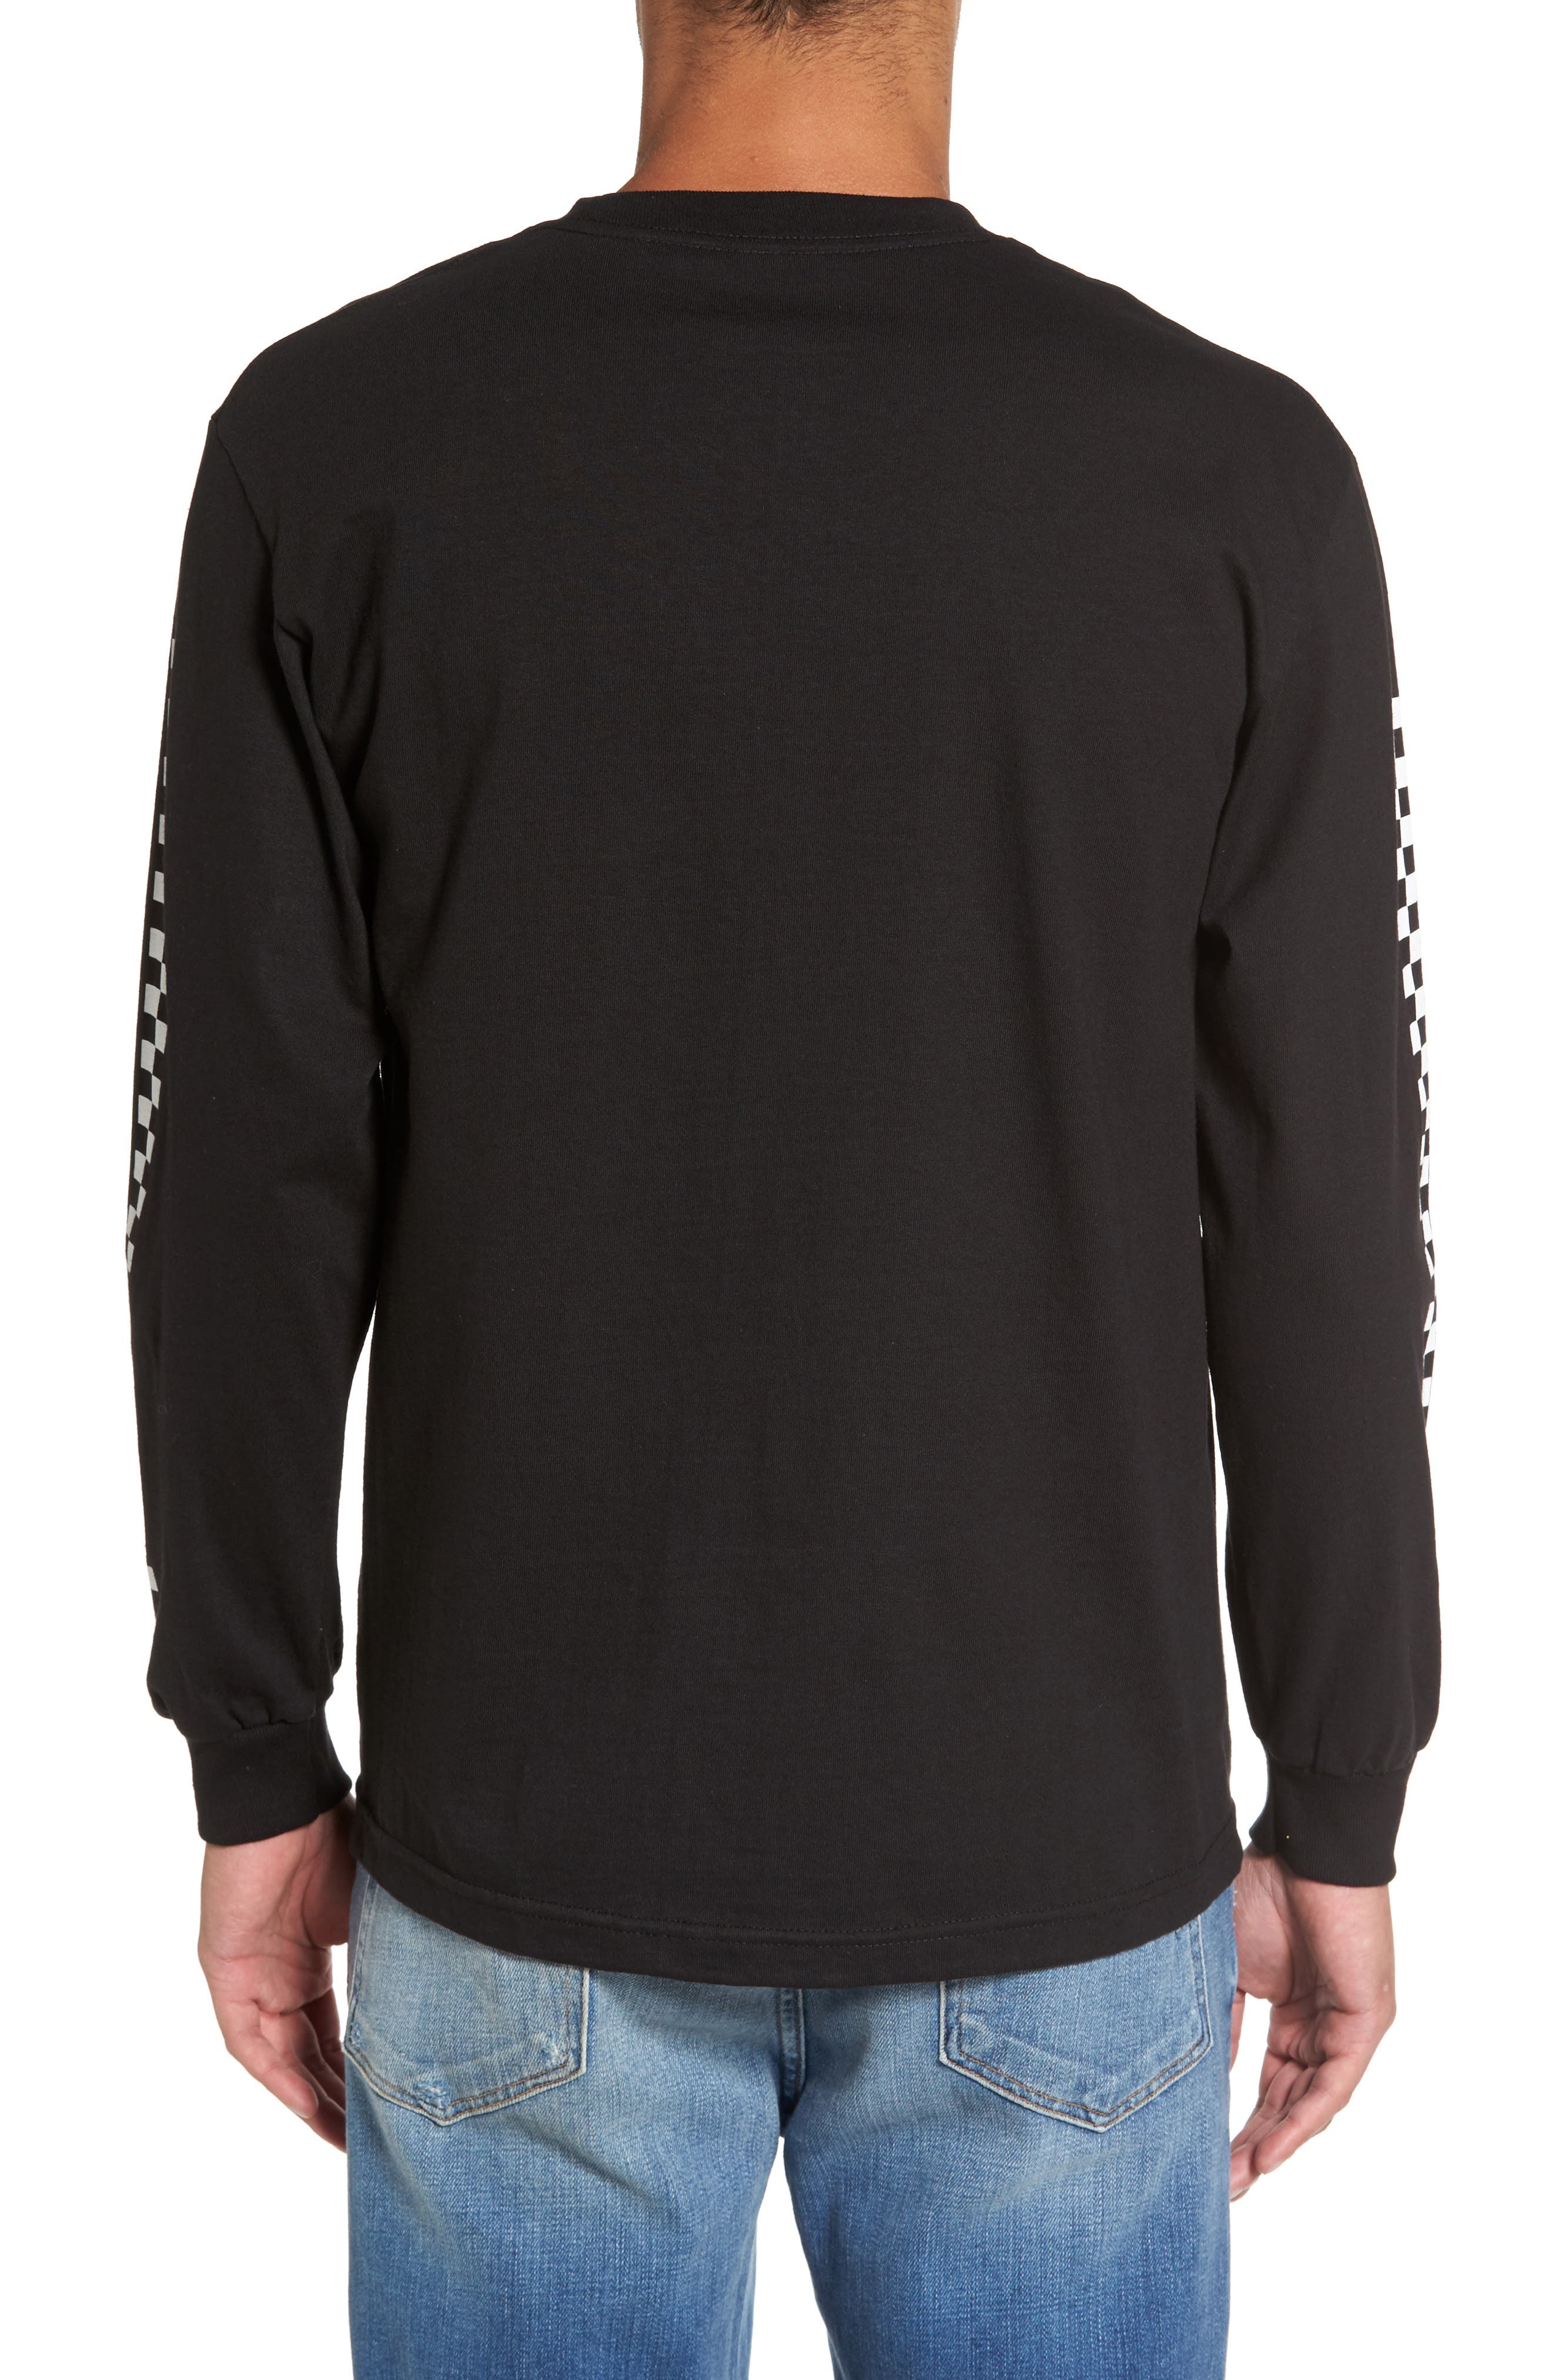 Alternate Image 2  - Vans Checkmate Long Sleeve Graphic T-Shirt